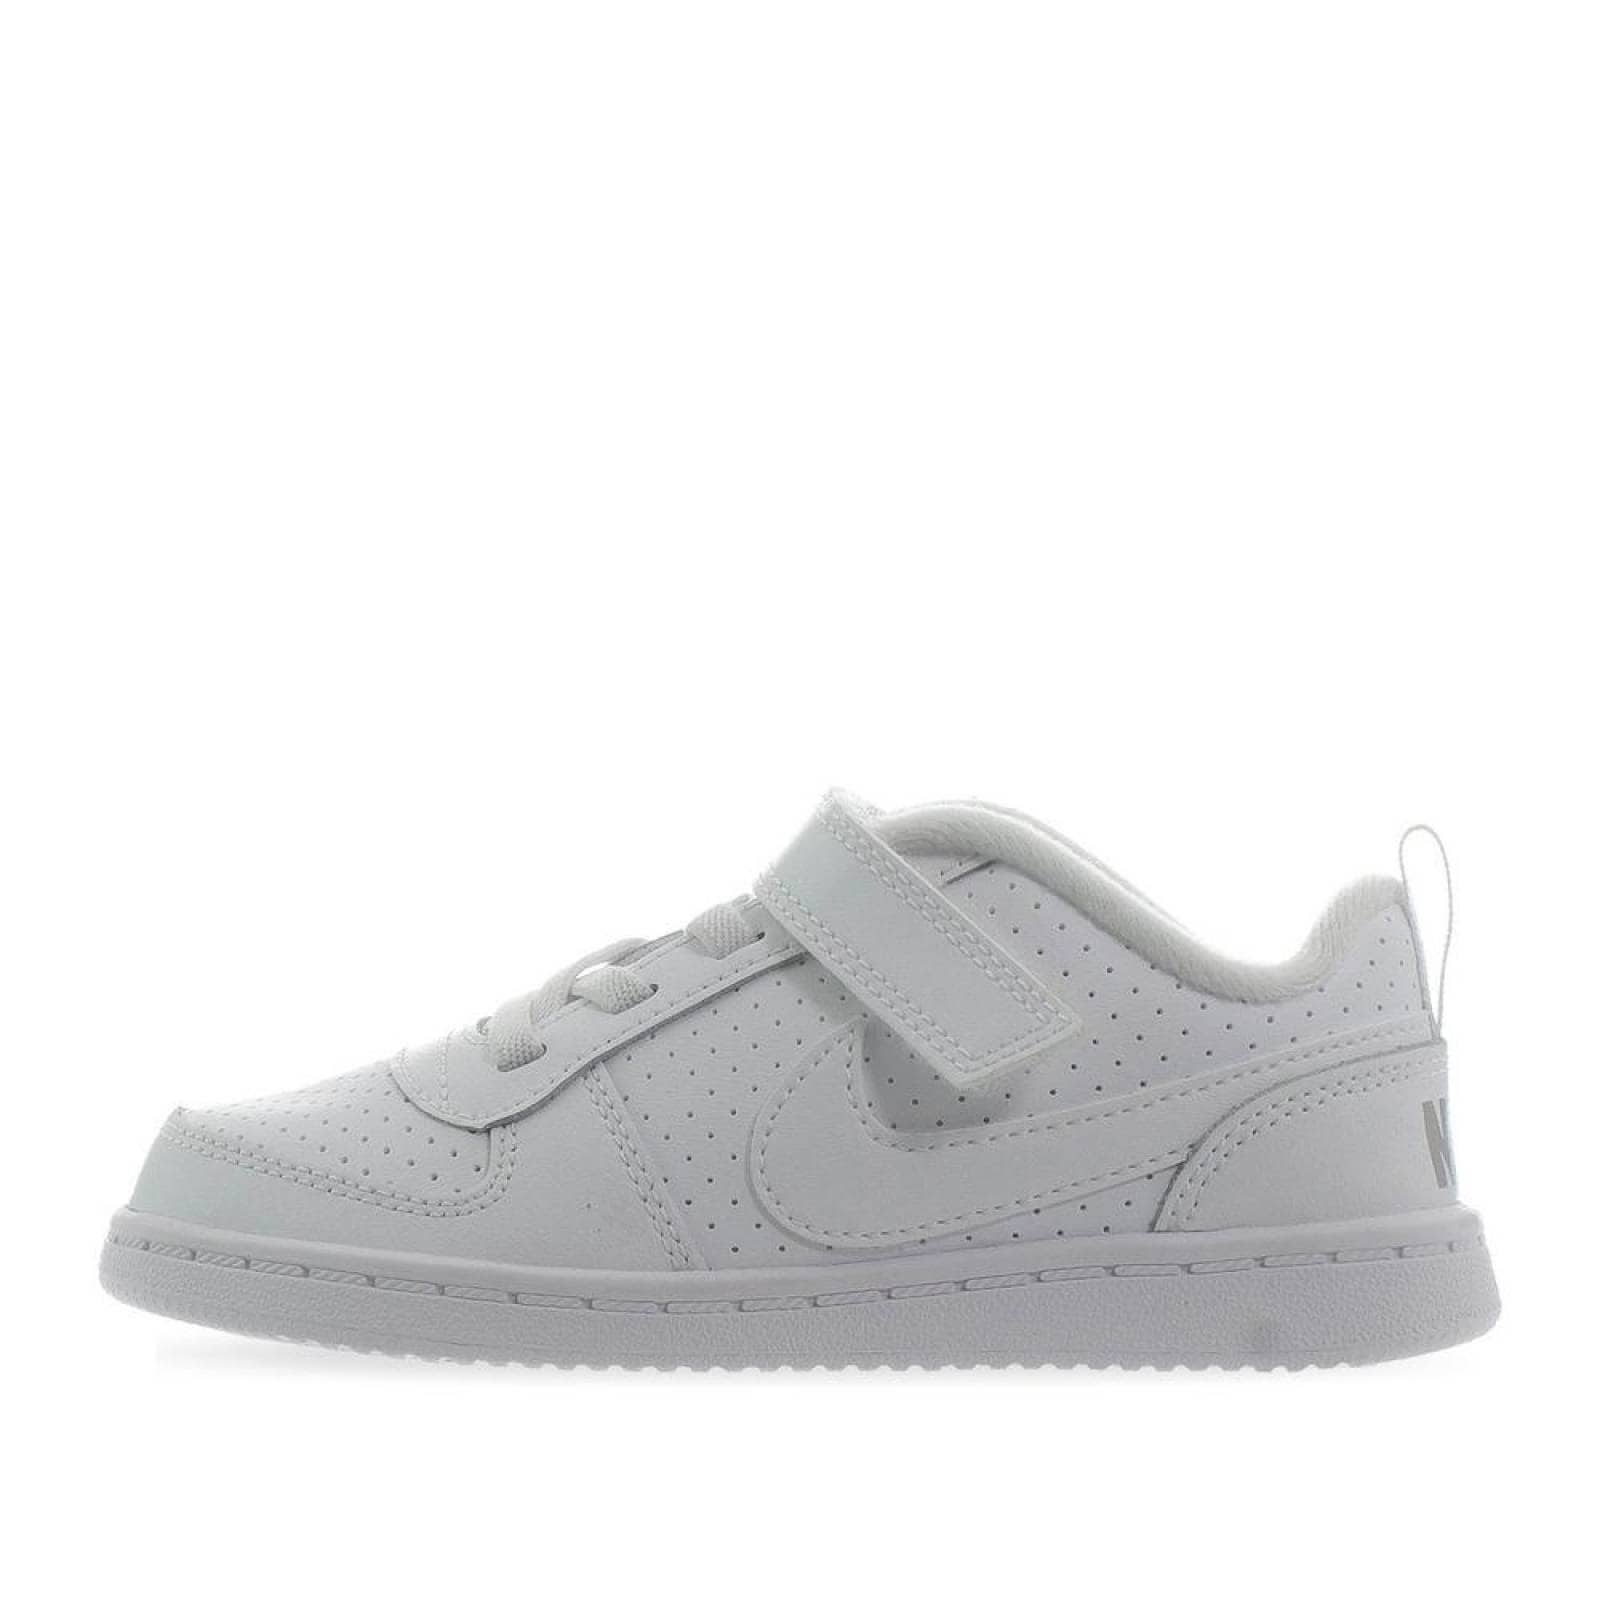 Tenis Nike Court Borough Low TD 870029100 Blanco Bebes